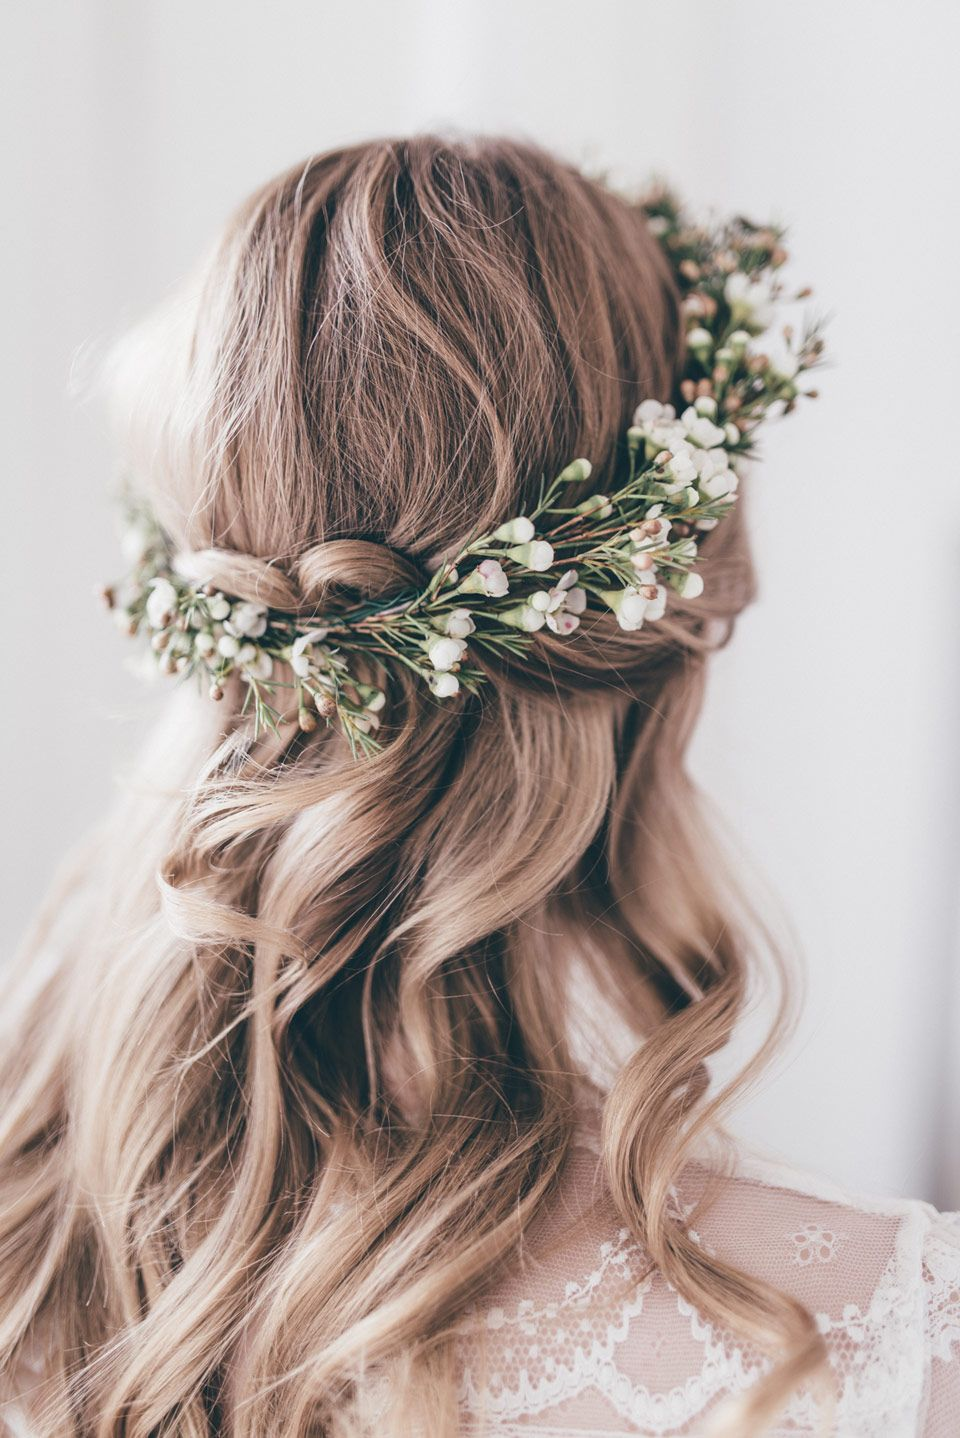 Botanical styled shoot pinterest wedding hair inspiration wedding hair inspiration with flower crown izmirmasajfo